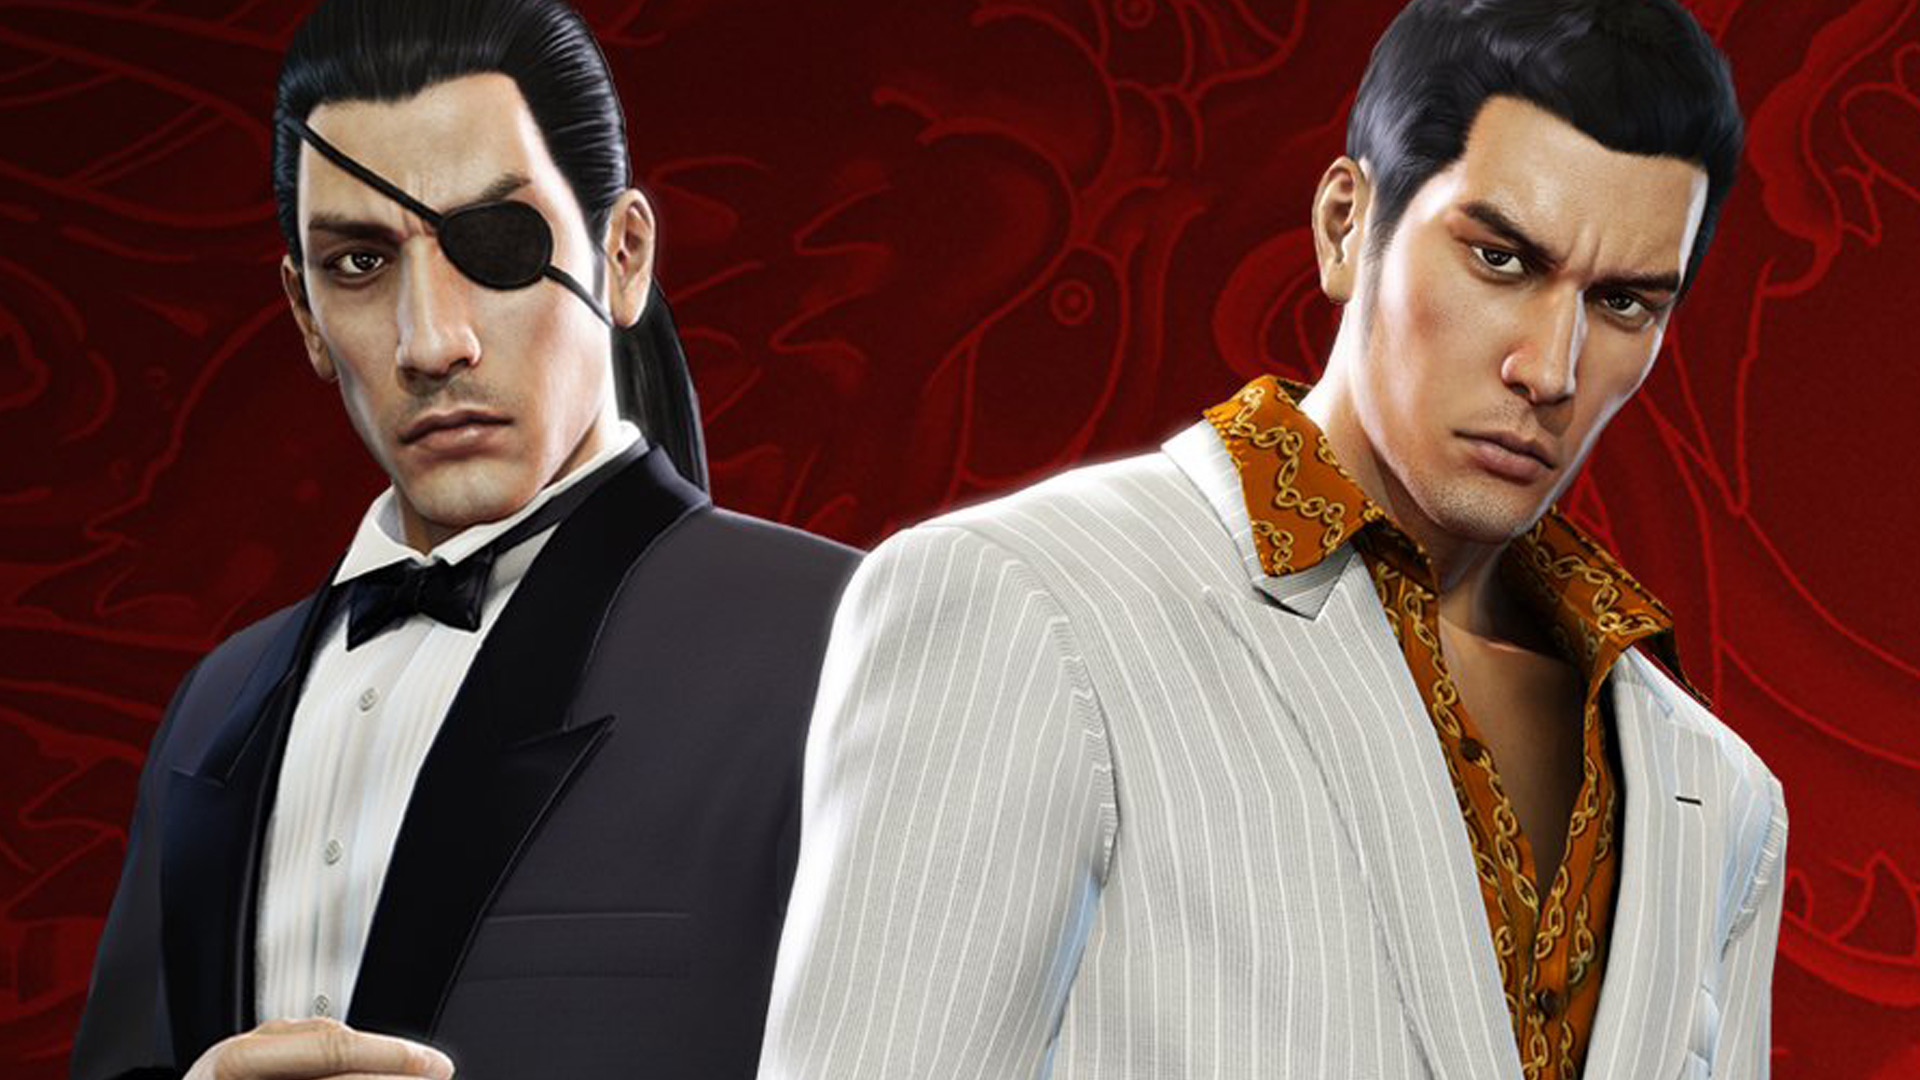 Download Yakuza 0 HD Wallpapers | Read games reviews, play online games & download games wallpapers